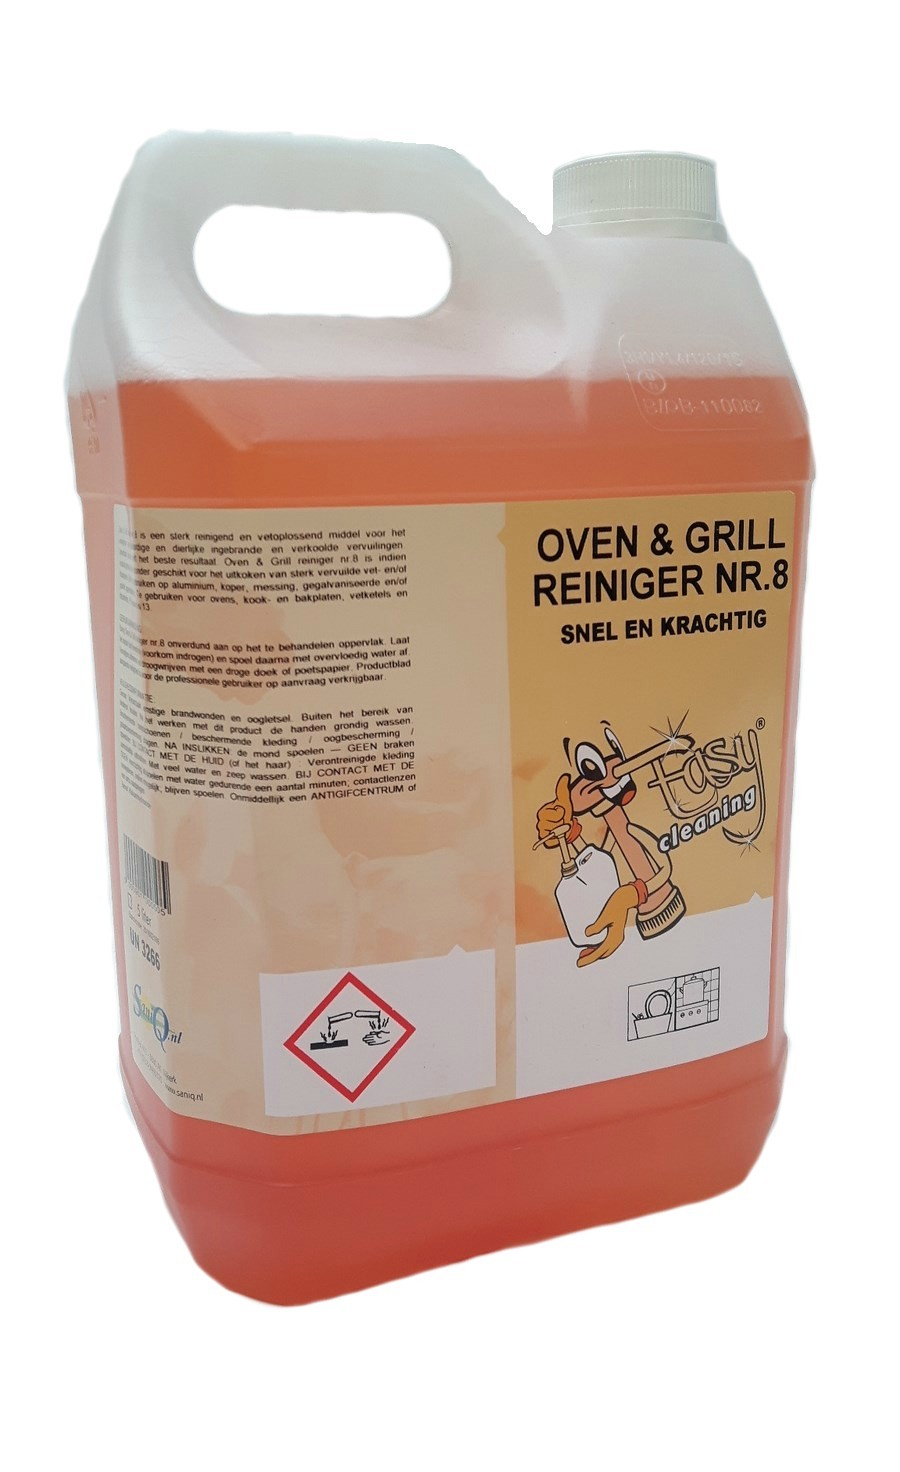 Easy Cleaning nr. 8 Oven & grill TO GO 5 liter